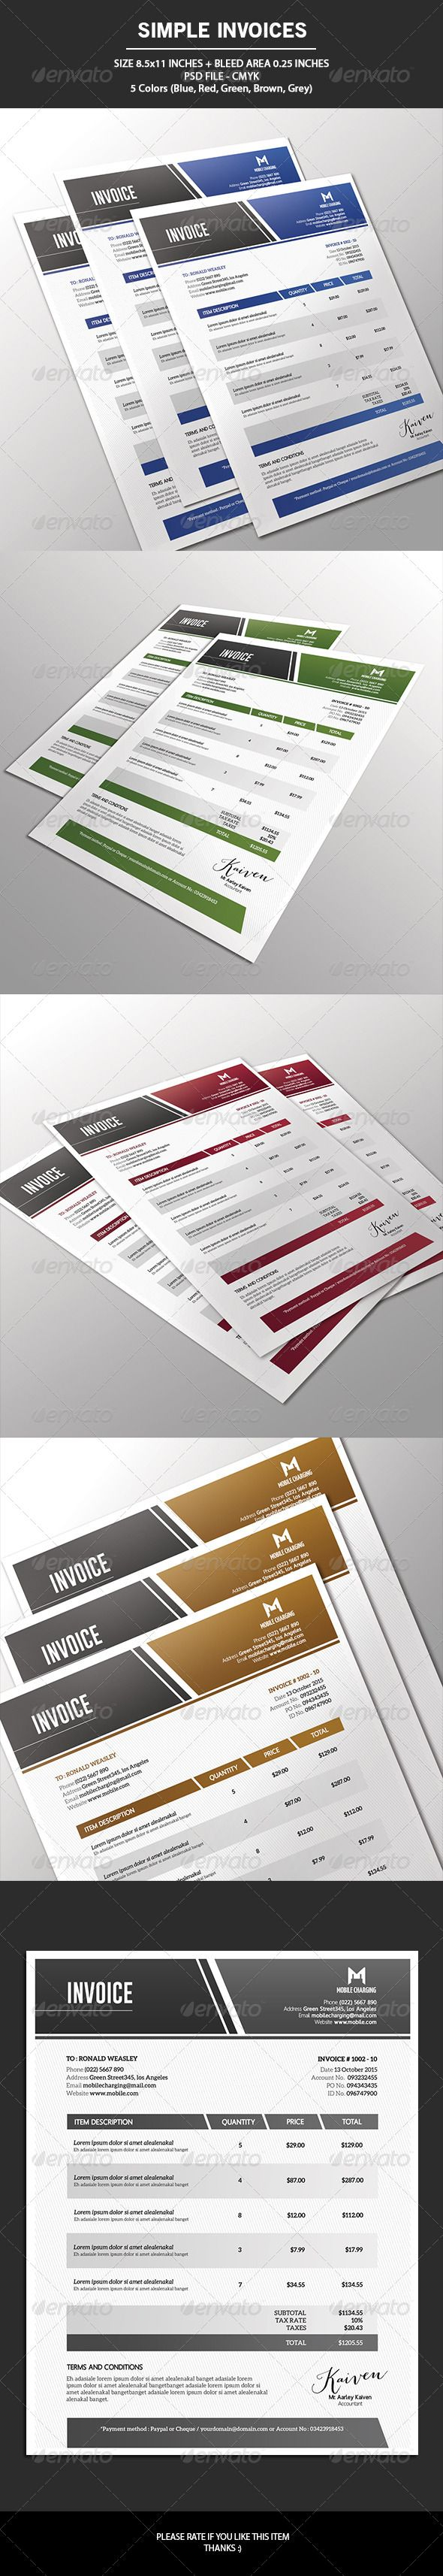 17 best images about invoice design on pinterest | creative, Invoice examples